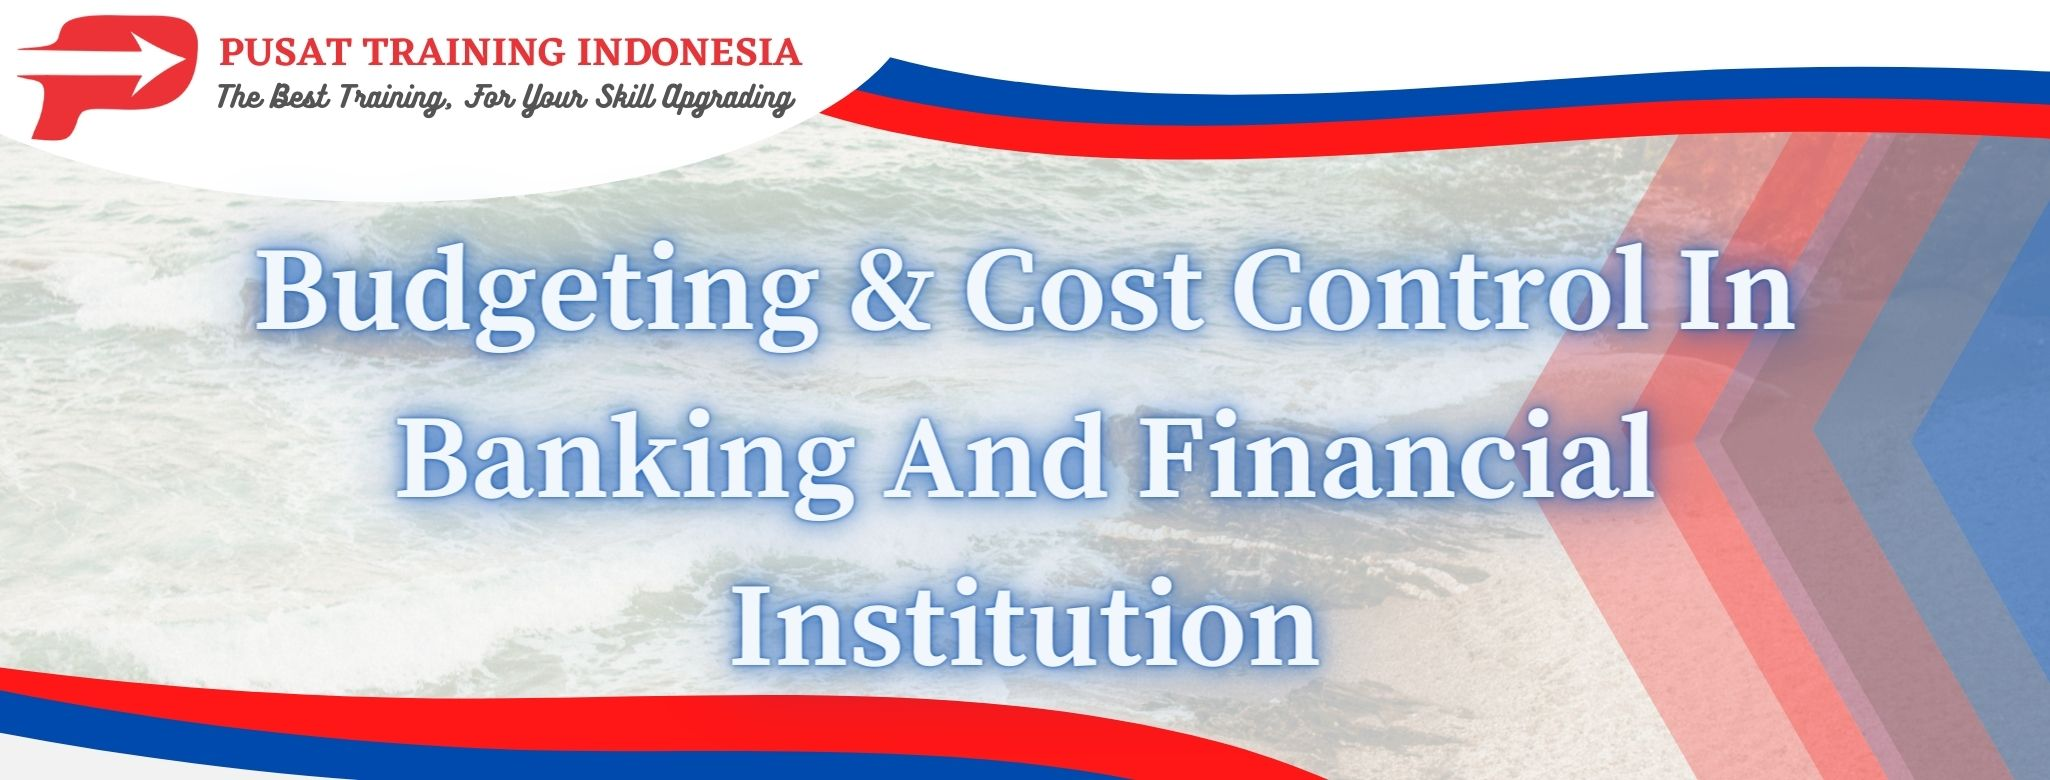 Budgeting-Cost-Control-In-Banking-And-Financial-Institution